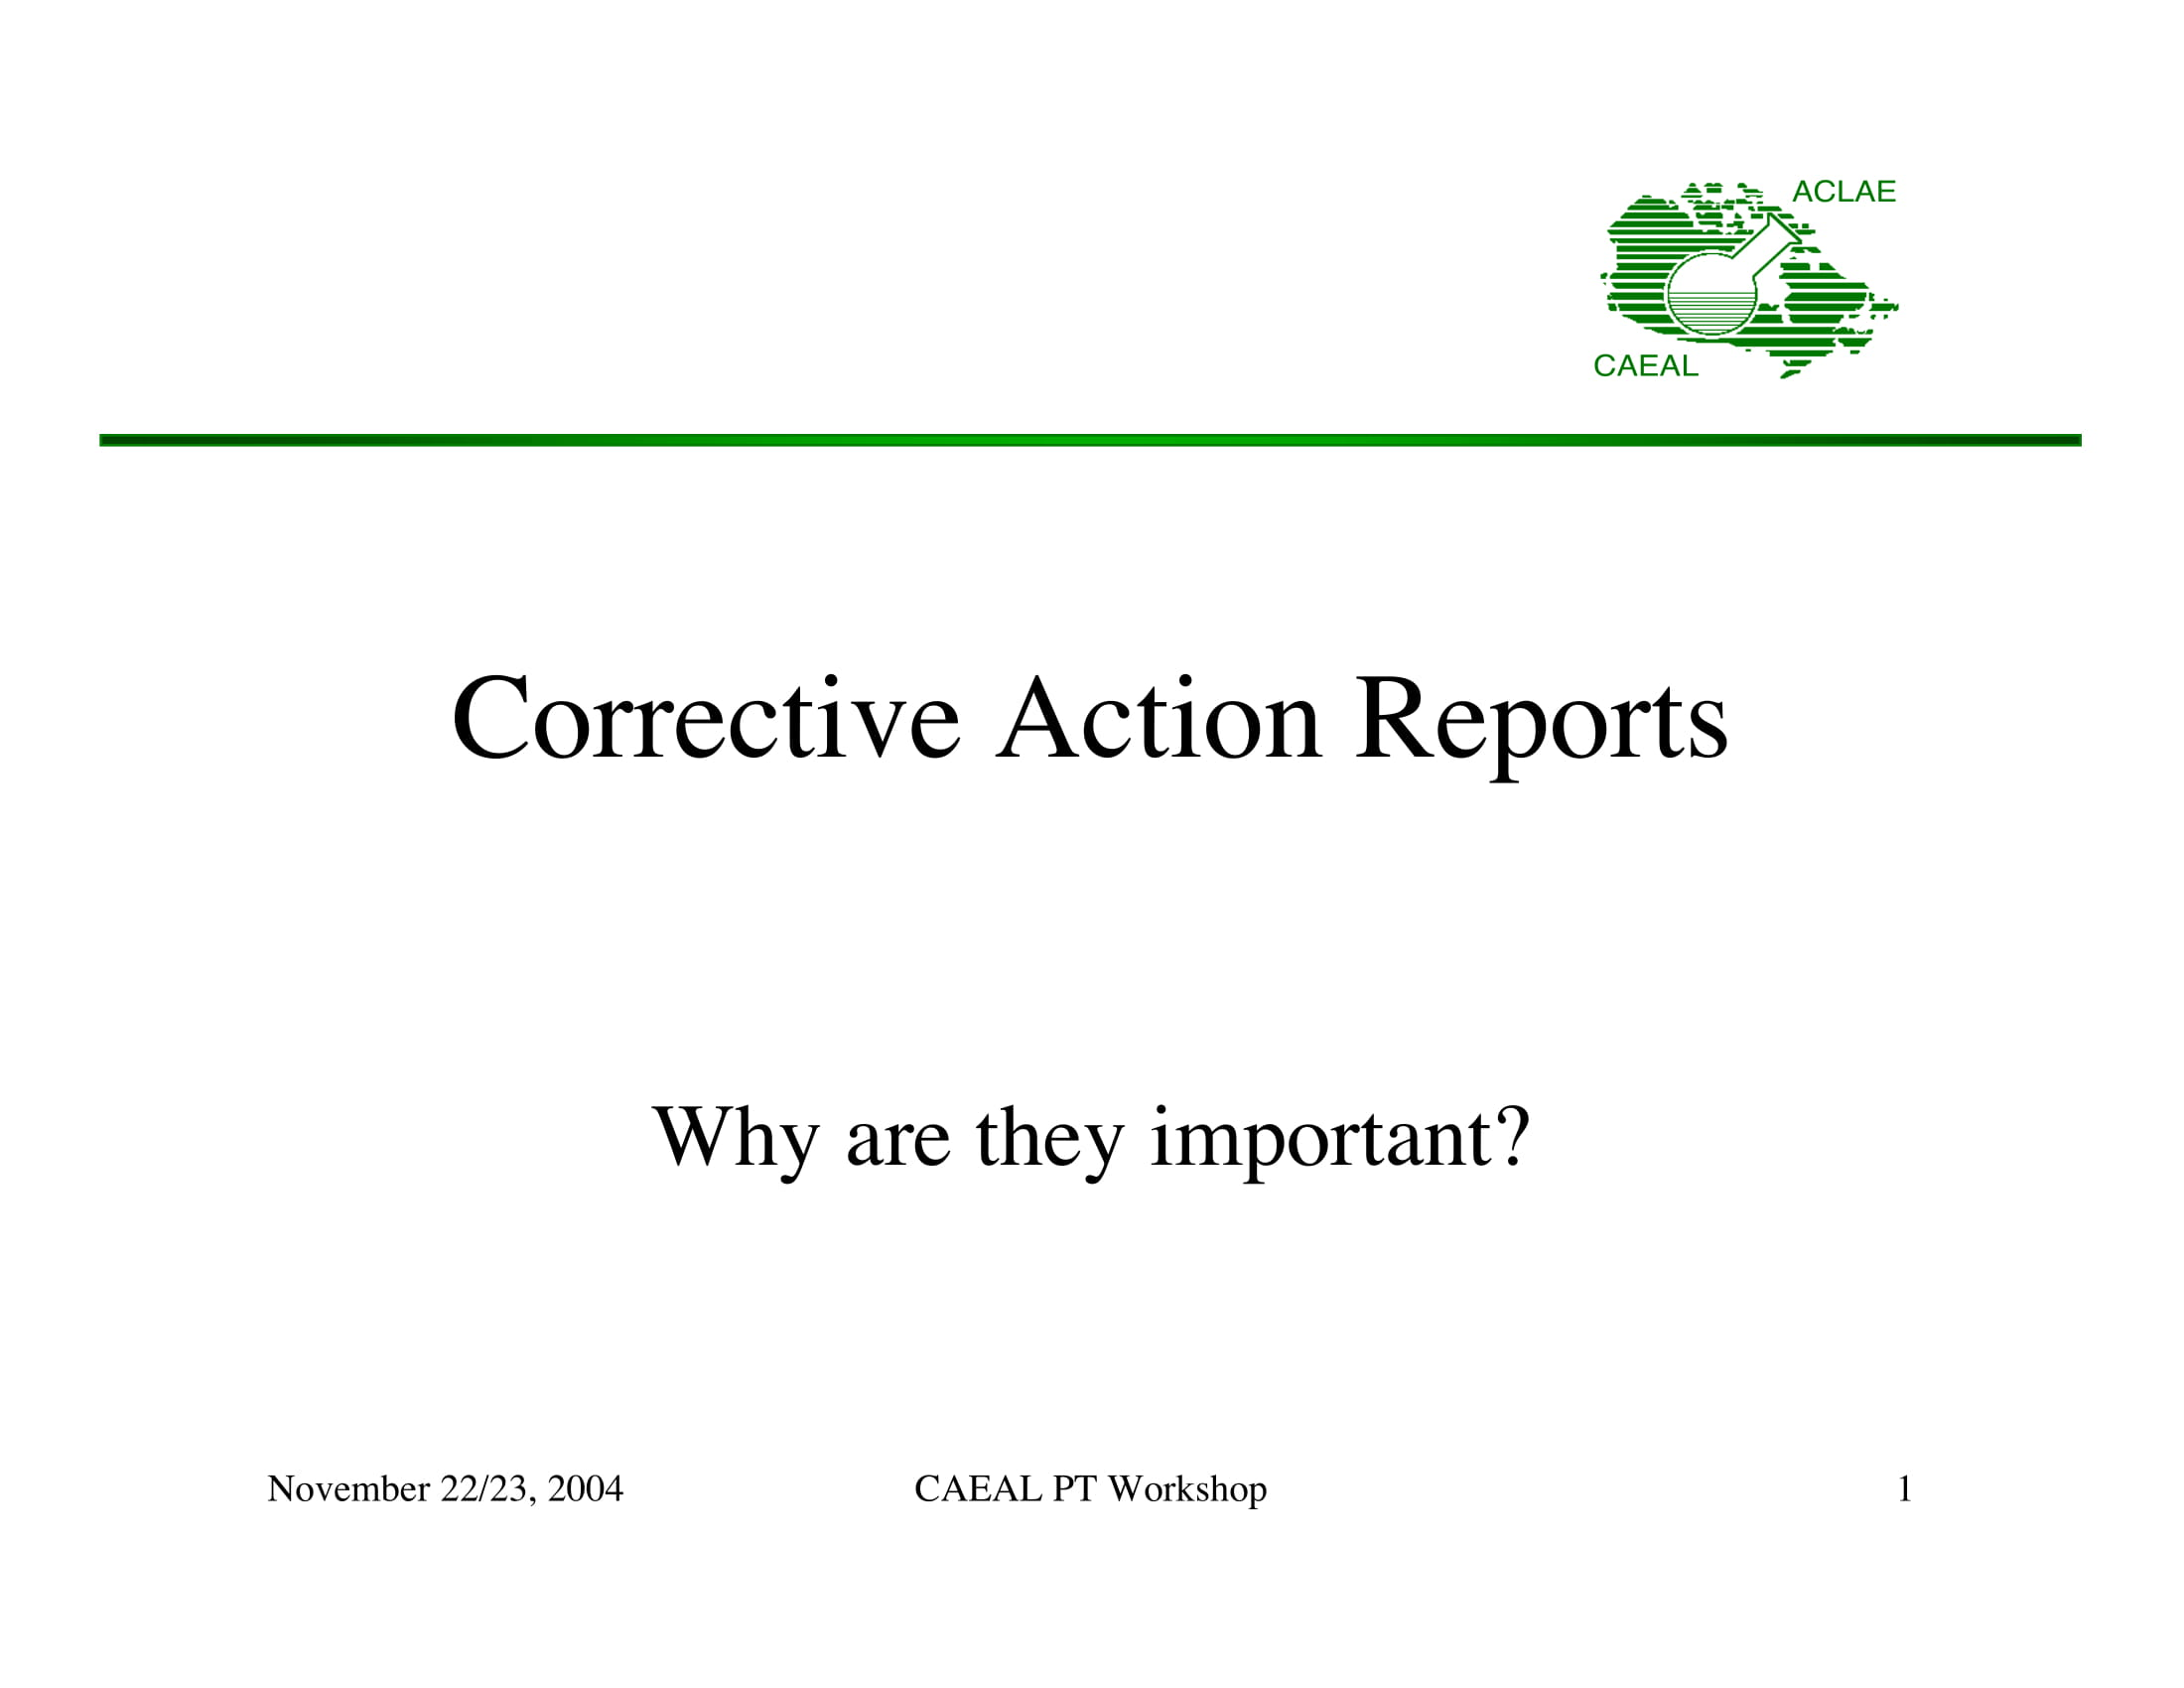 corrective action report example 01